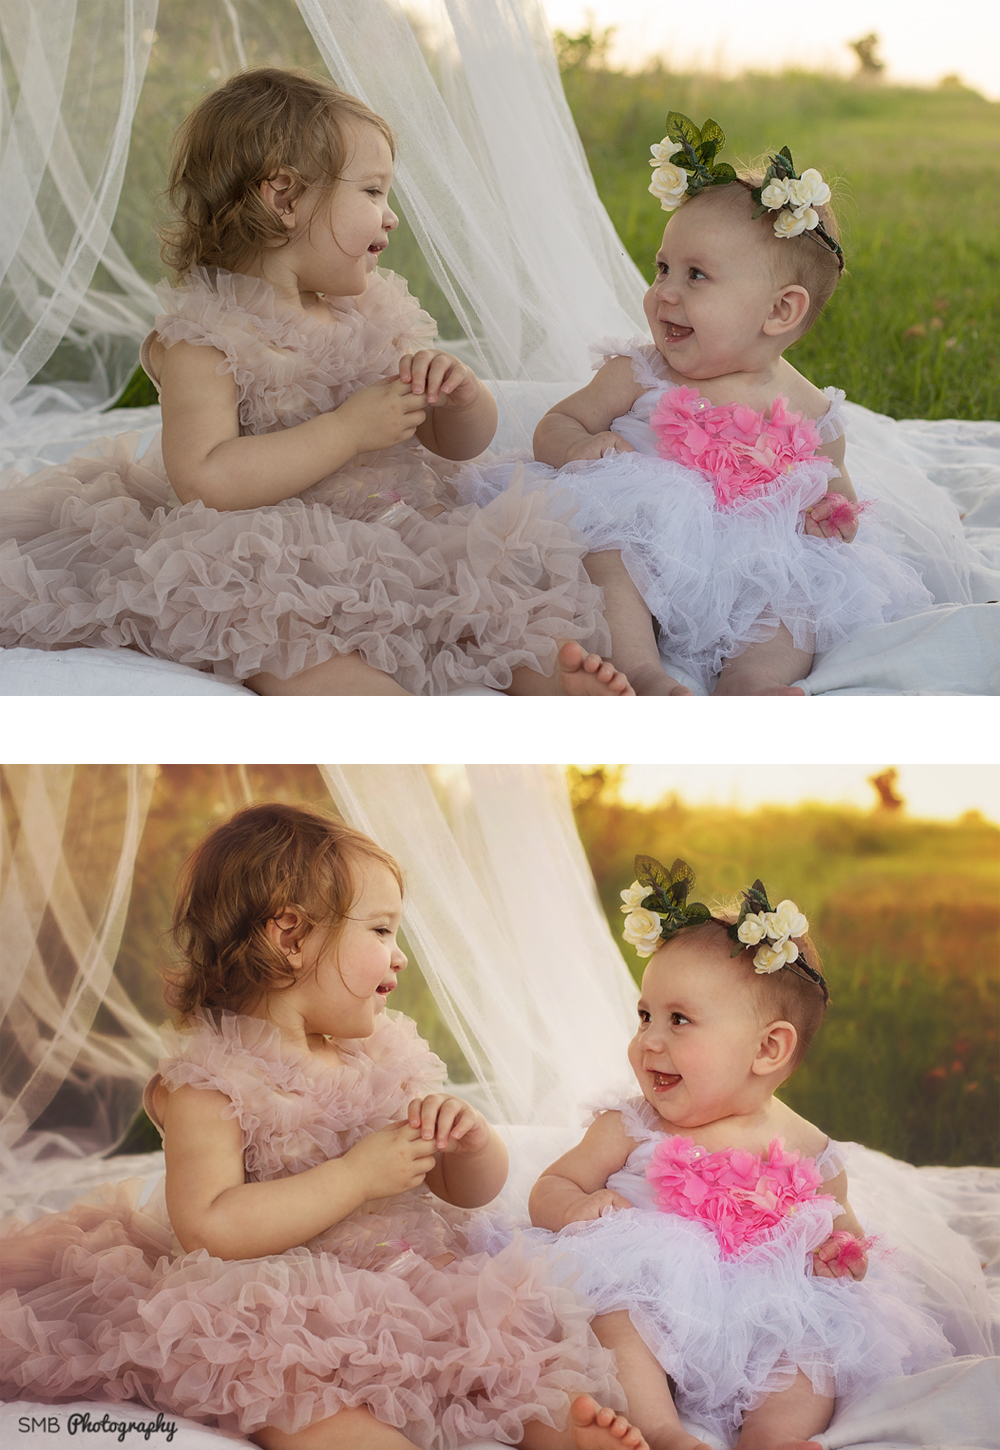 Before and After Editing | SMB Photography